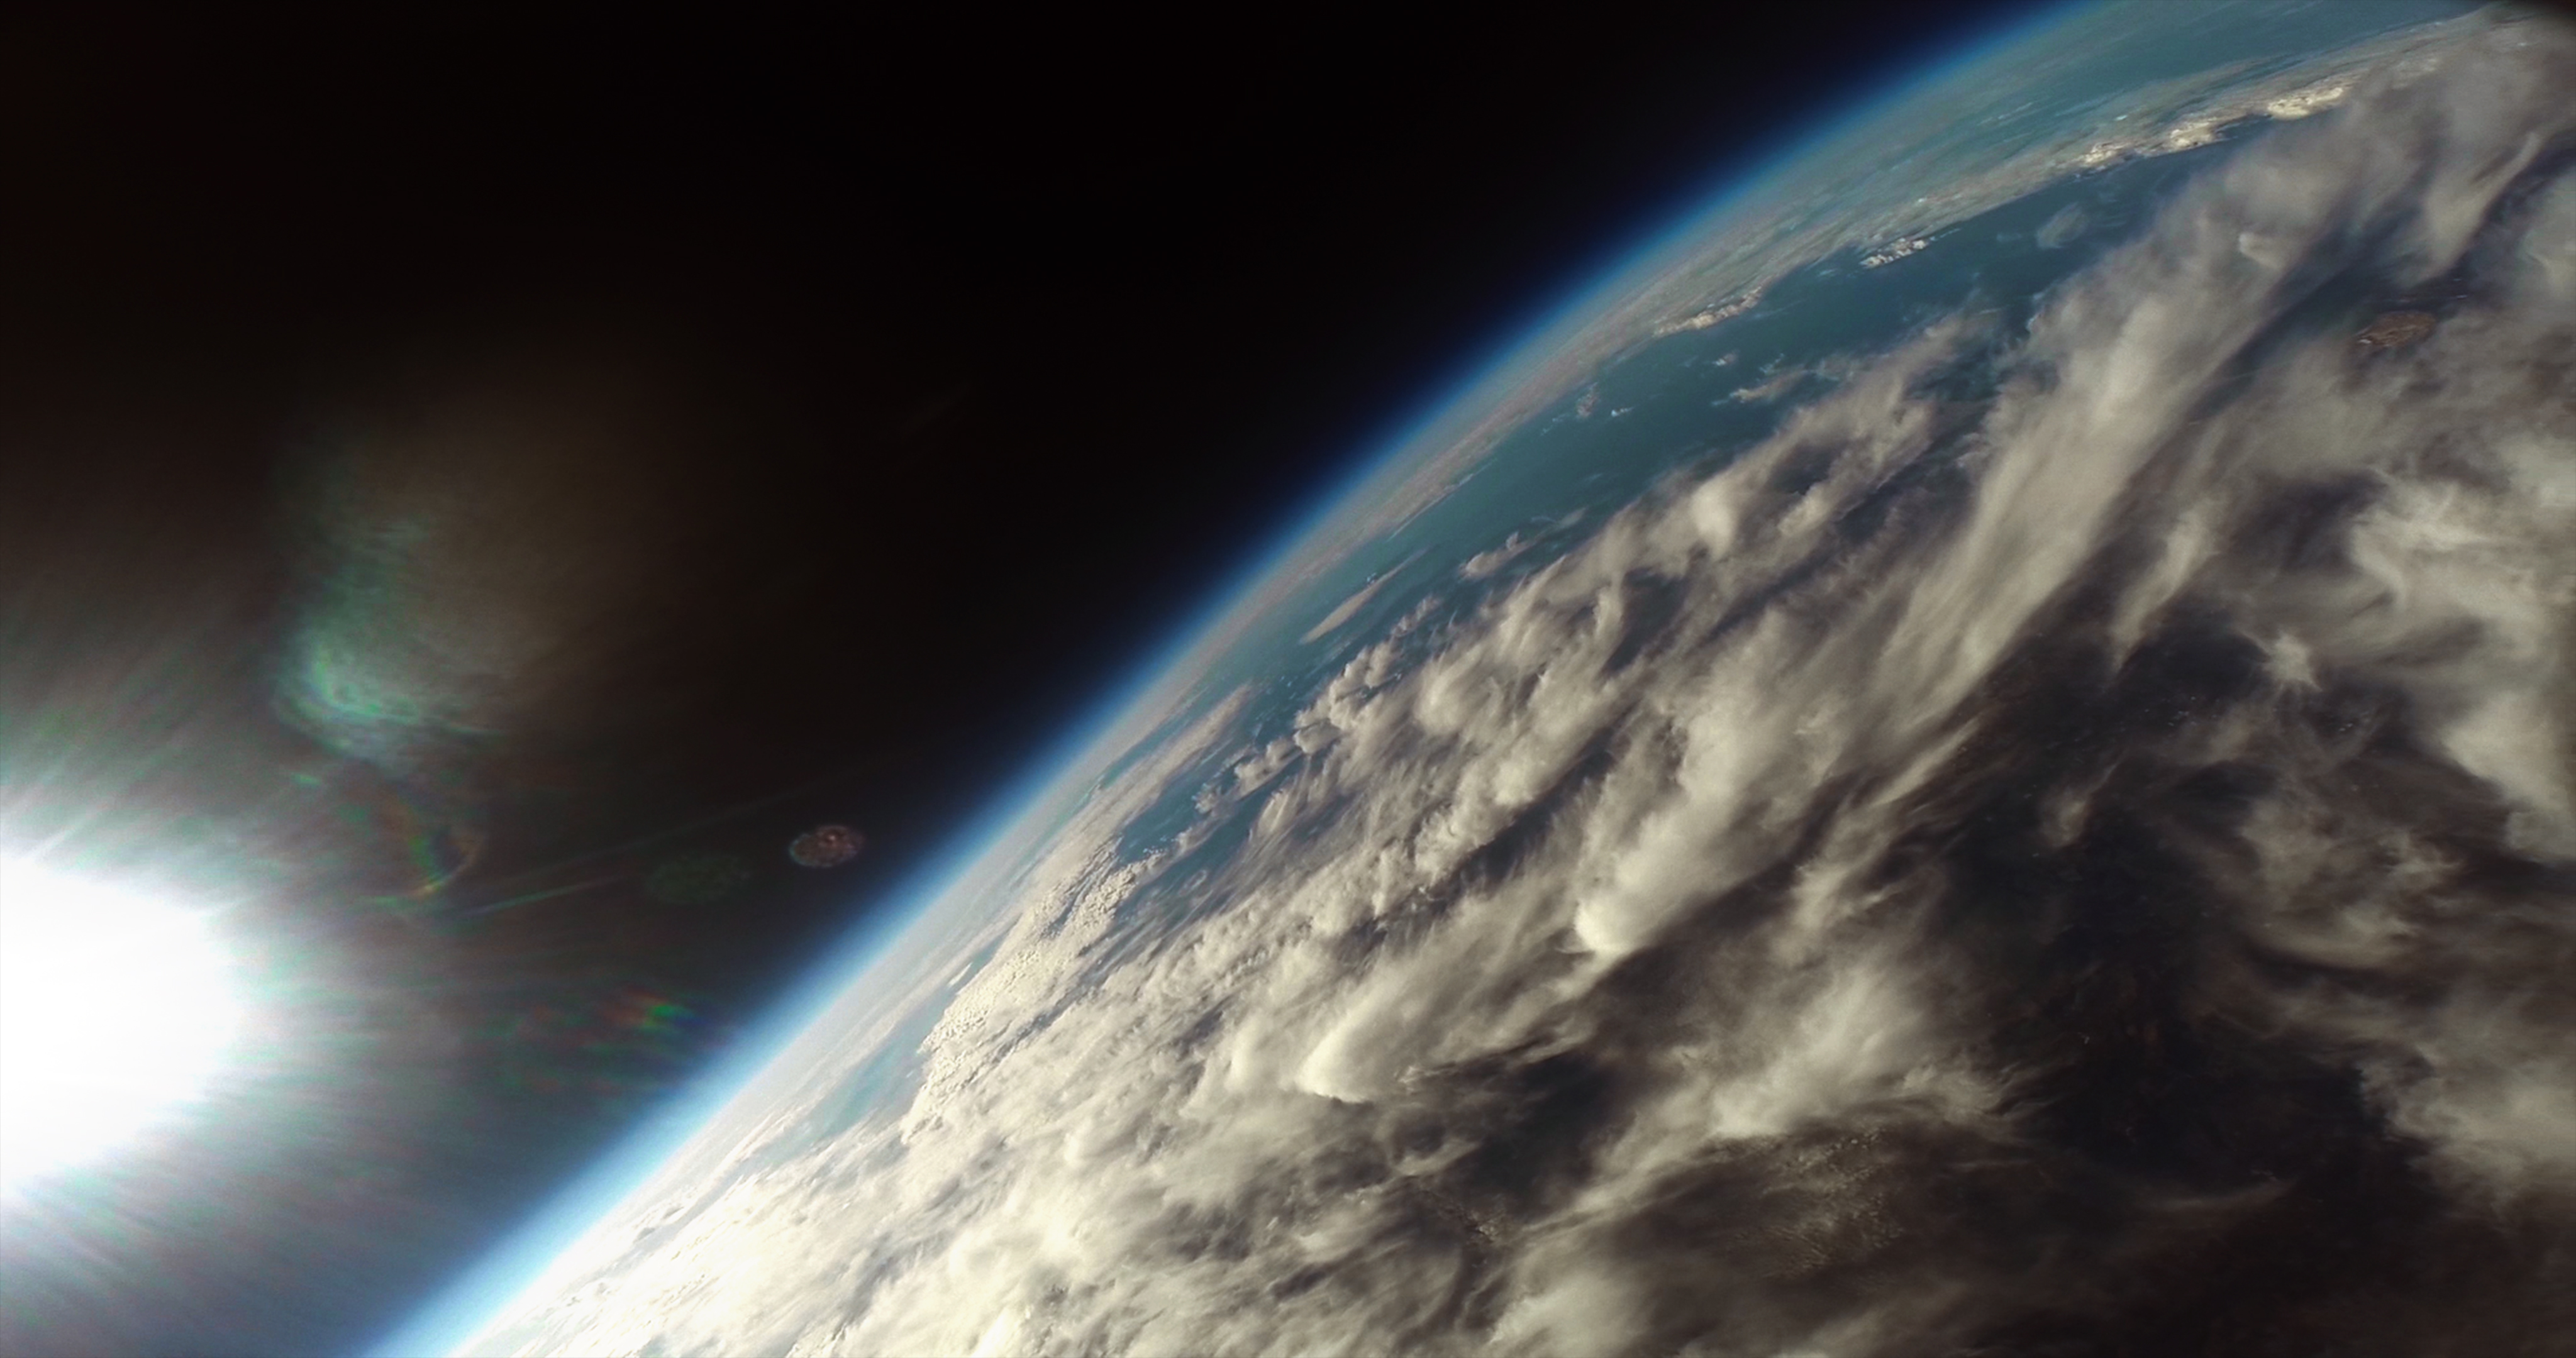 Students Capture Amazing GoPro Footage of Earth from a High Altitude Balloon!